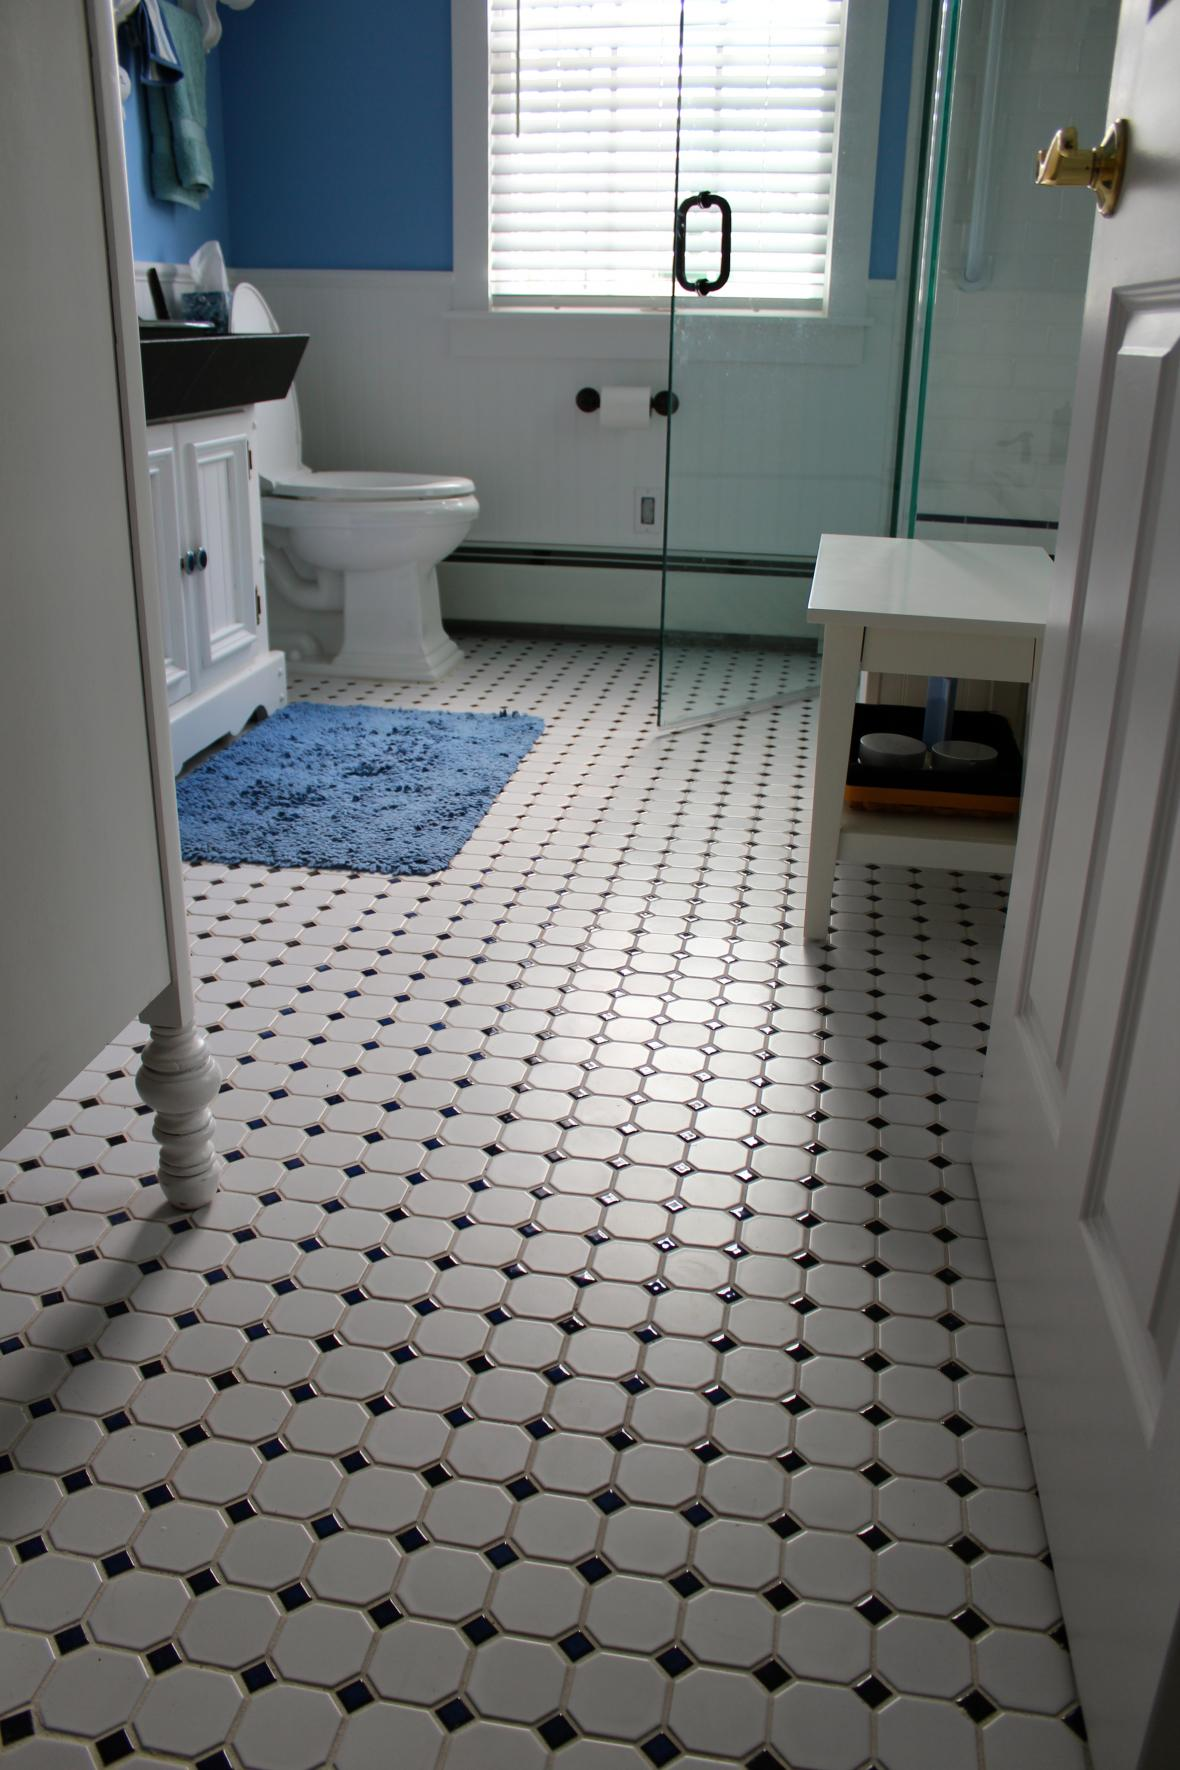 Luxury We Are Redoing This Horrible Space The Adjoining Space Has Neutral 18 Oatmeal Mottled Tile Ido Not Want To Use This Tile In The Laundrybathroom Should The Laundrybathroom Have The Same Flooring As Each Other, Or Can The Laundry